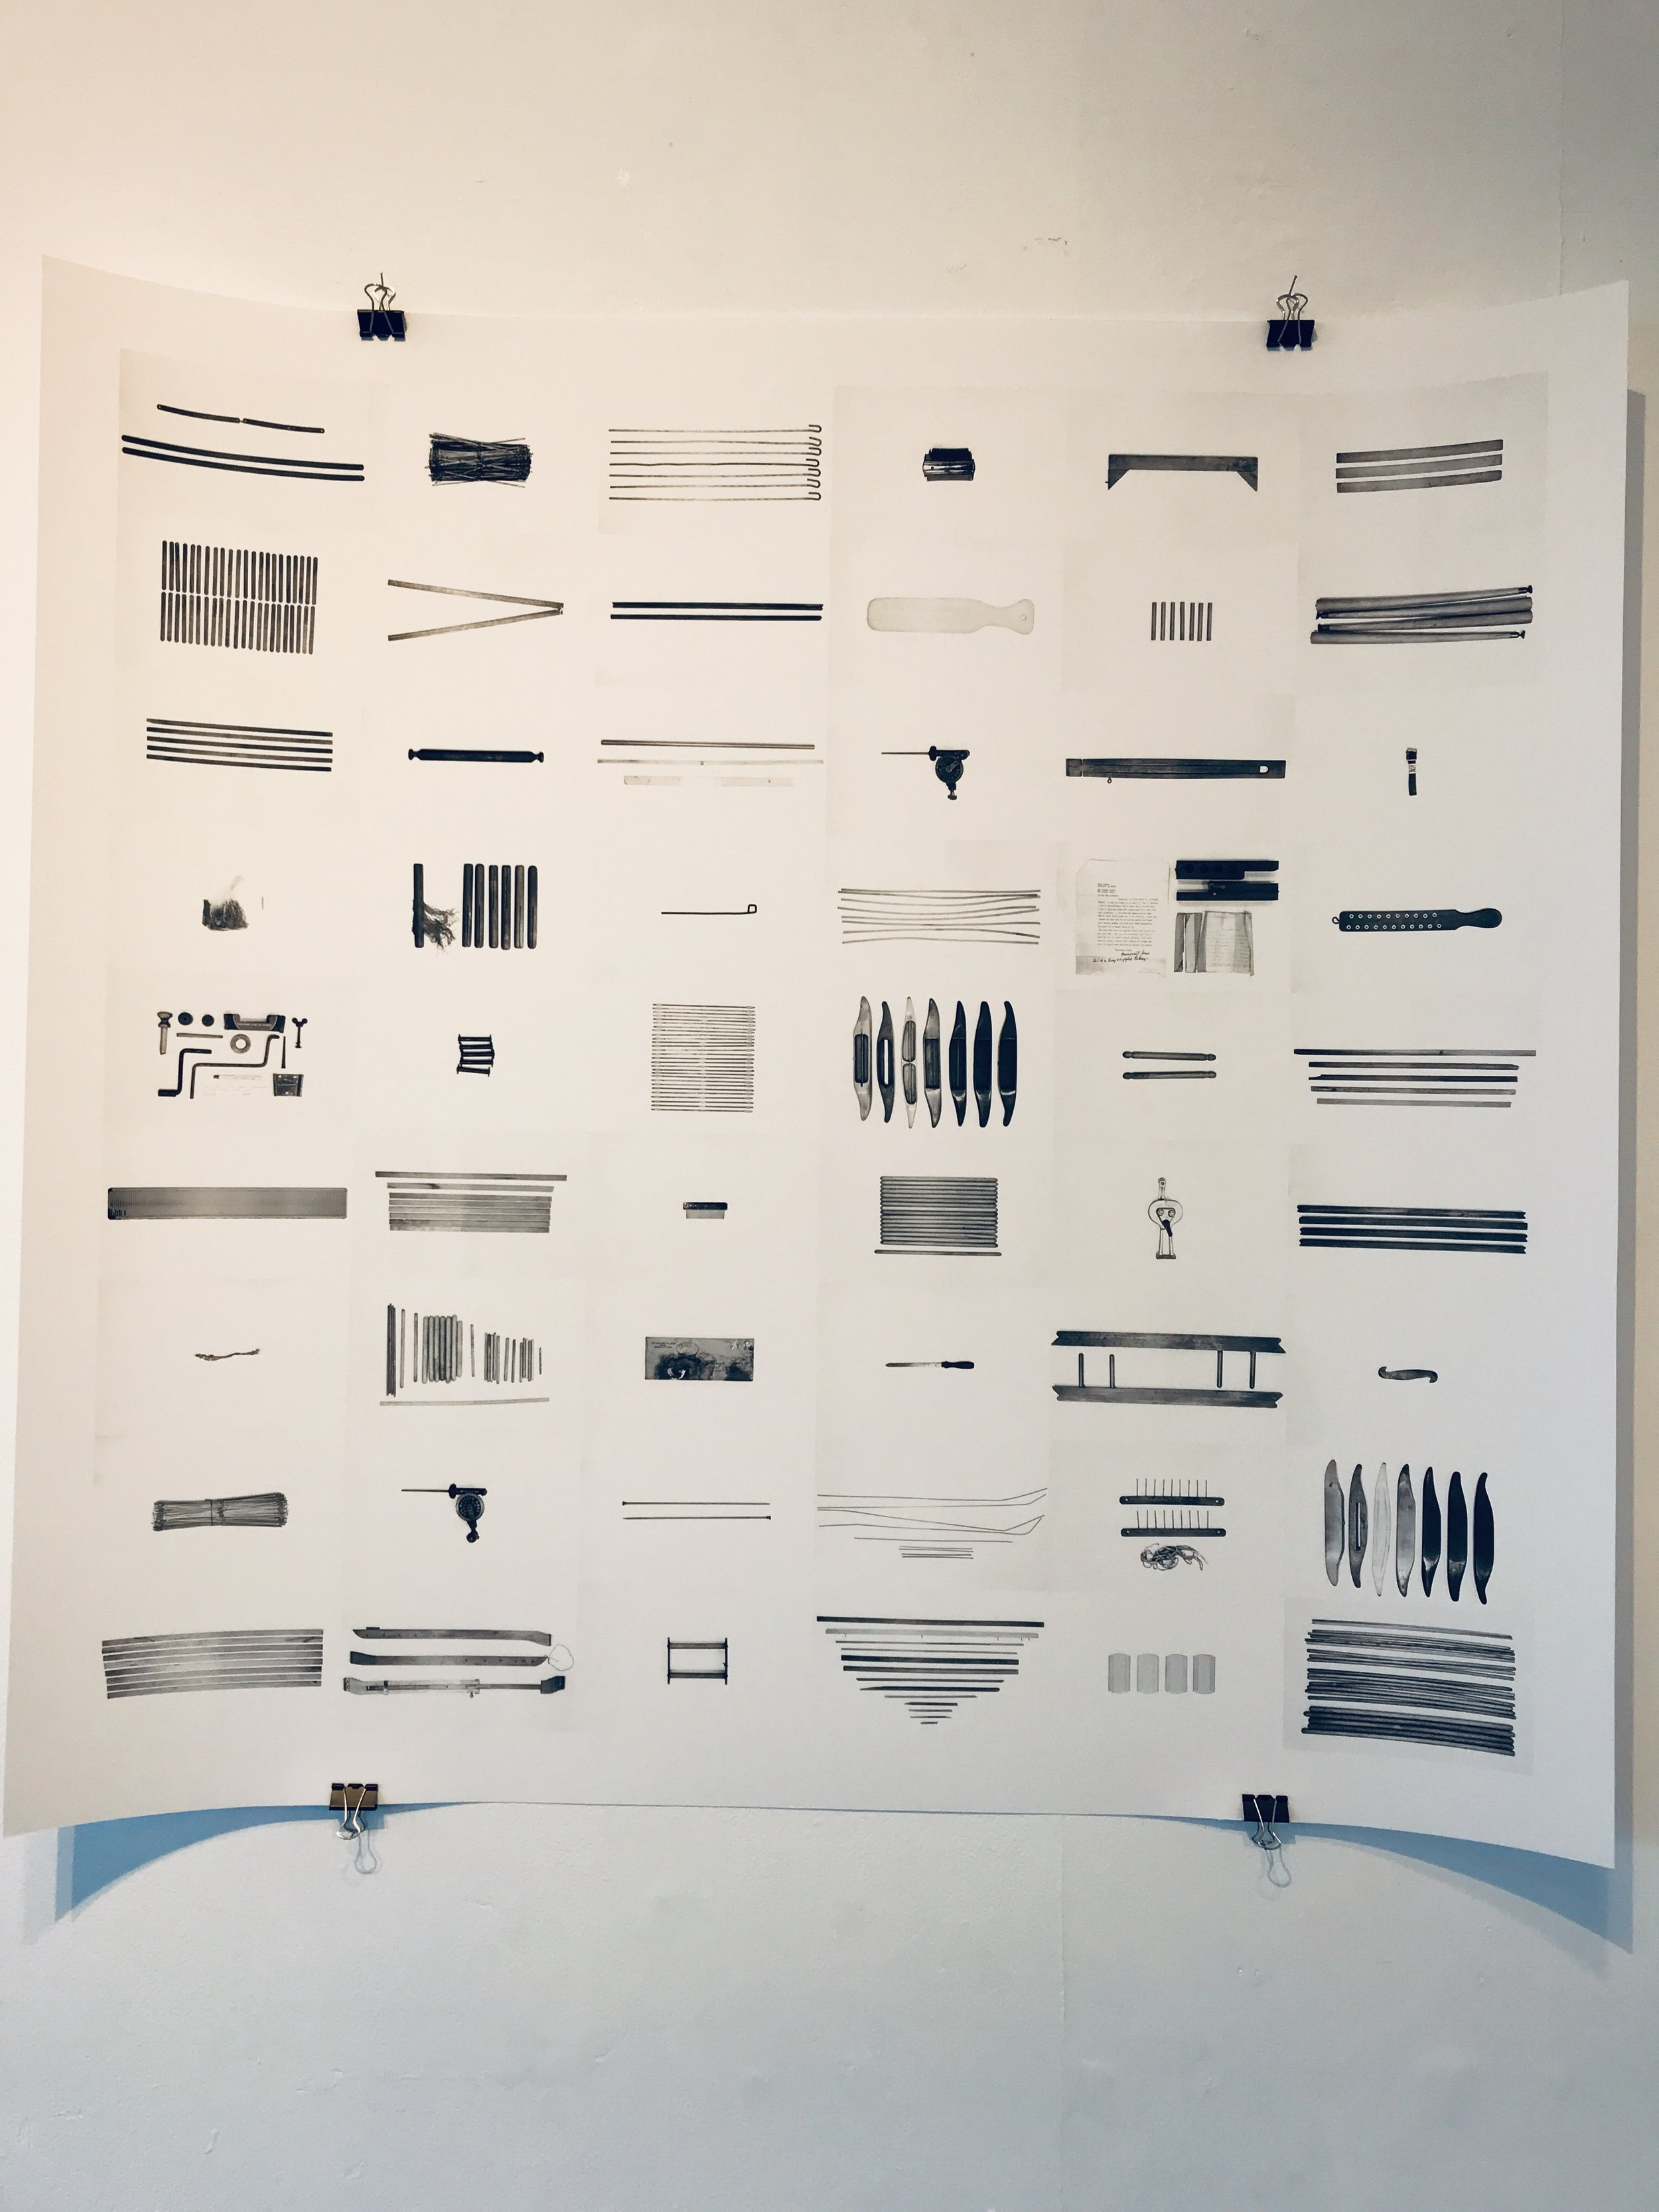 Print of various objects from the Albers studio